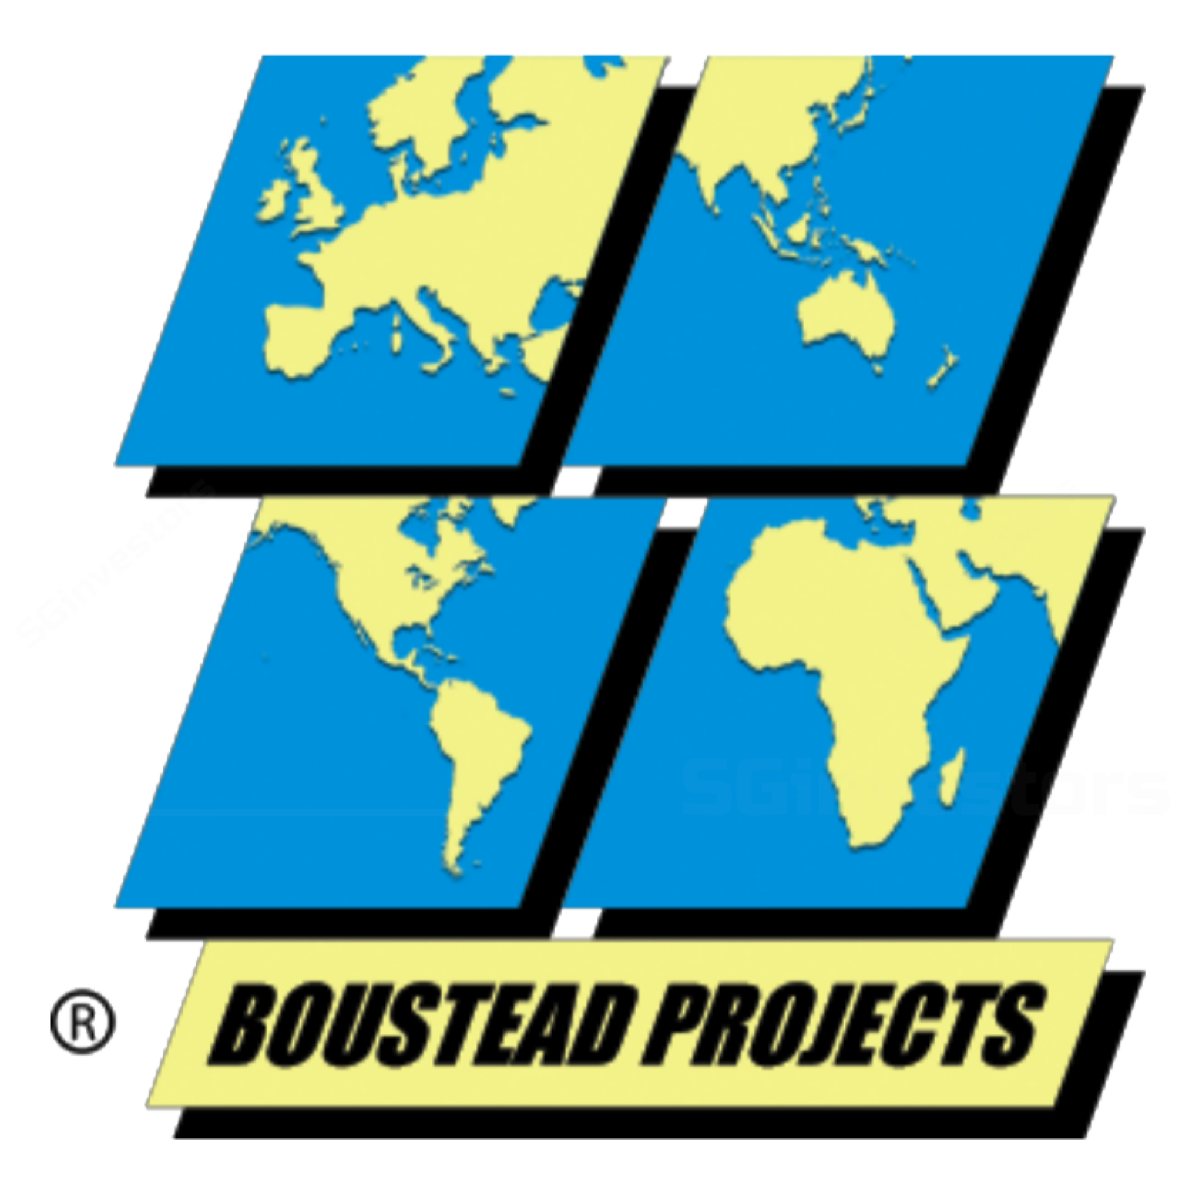 Boustead Project Land